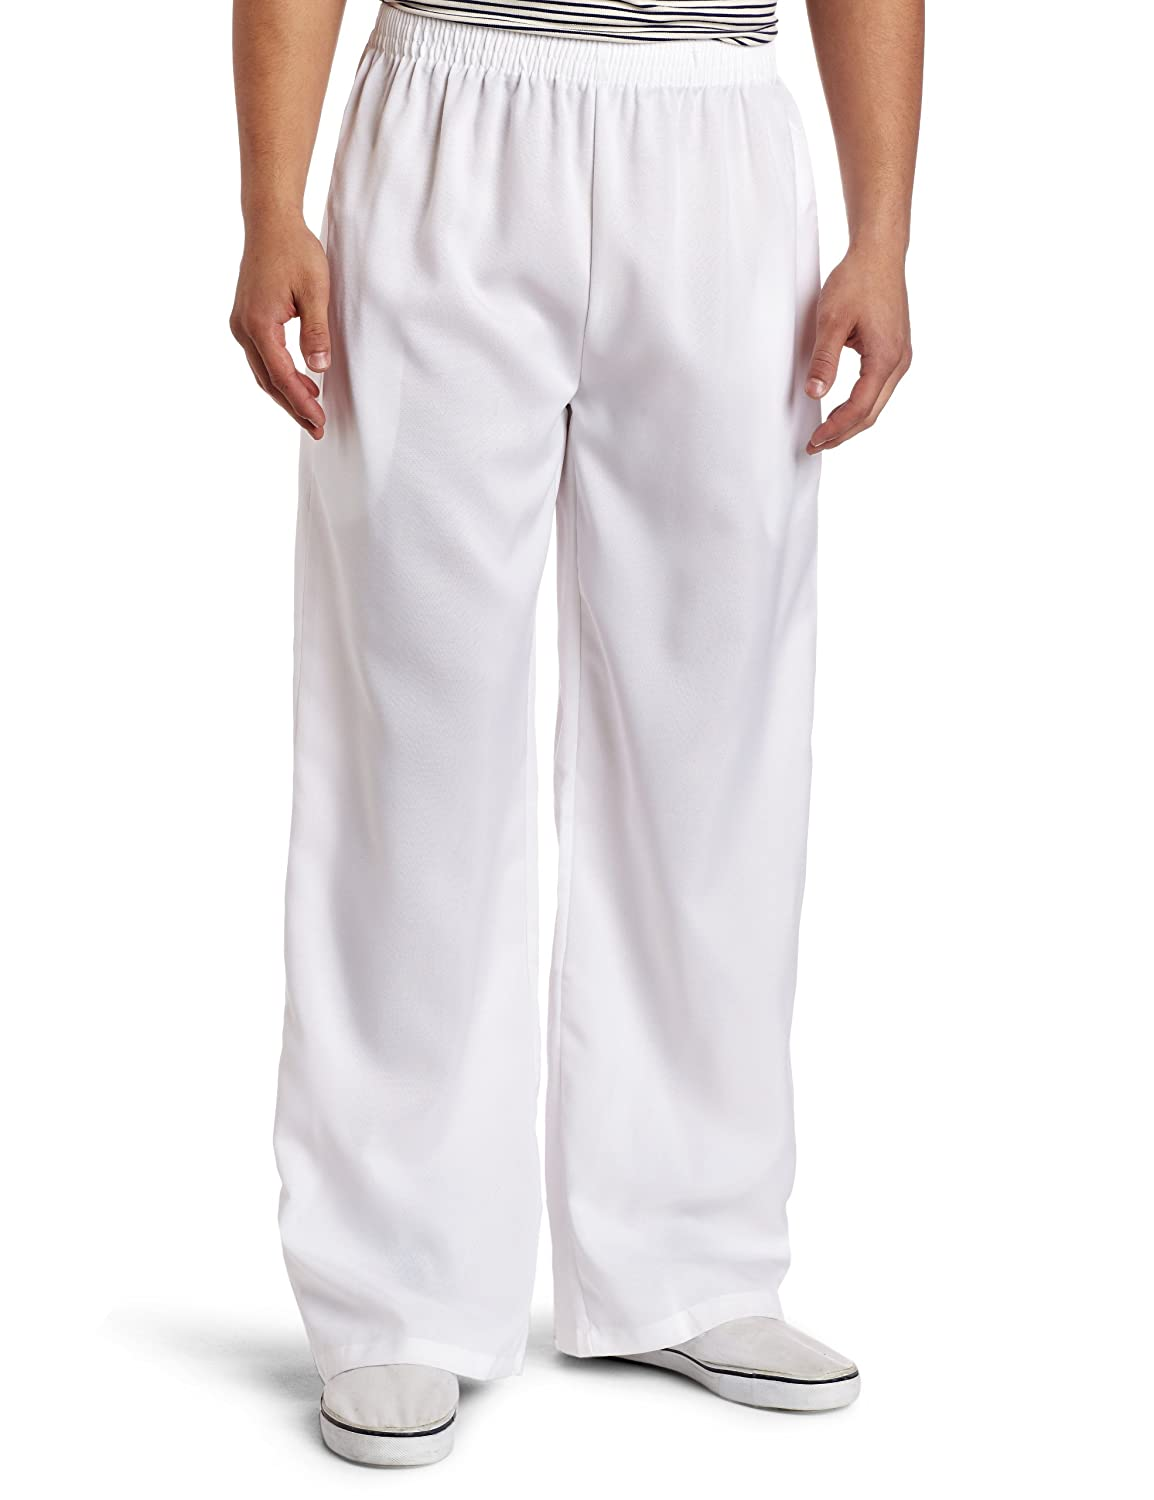 Dreamgirl Men's Elastic Waist Basic Pant Dreamgirl Costumes 6379